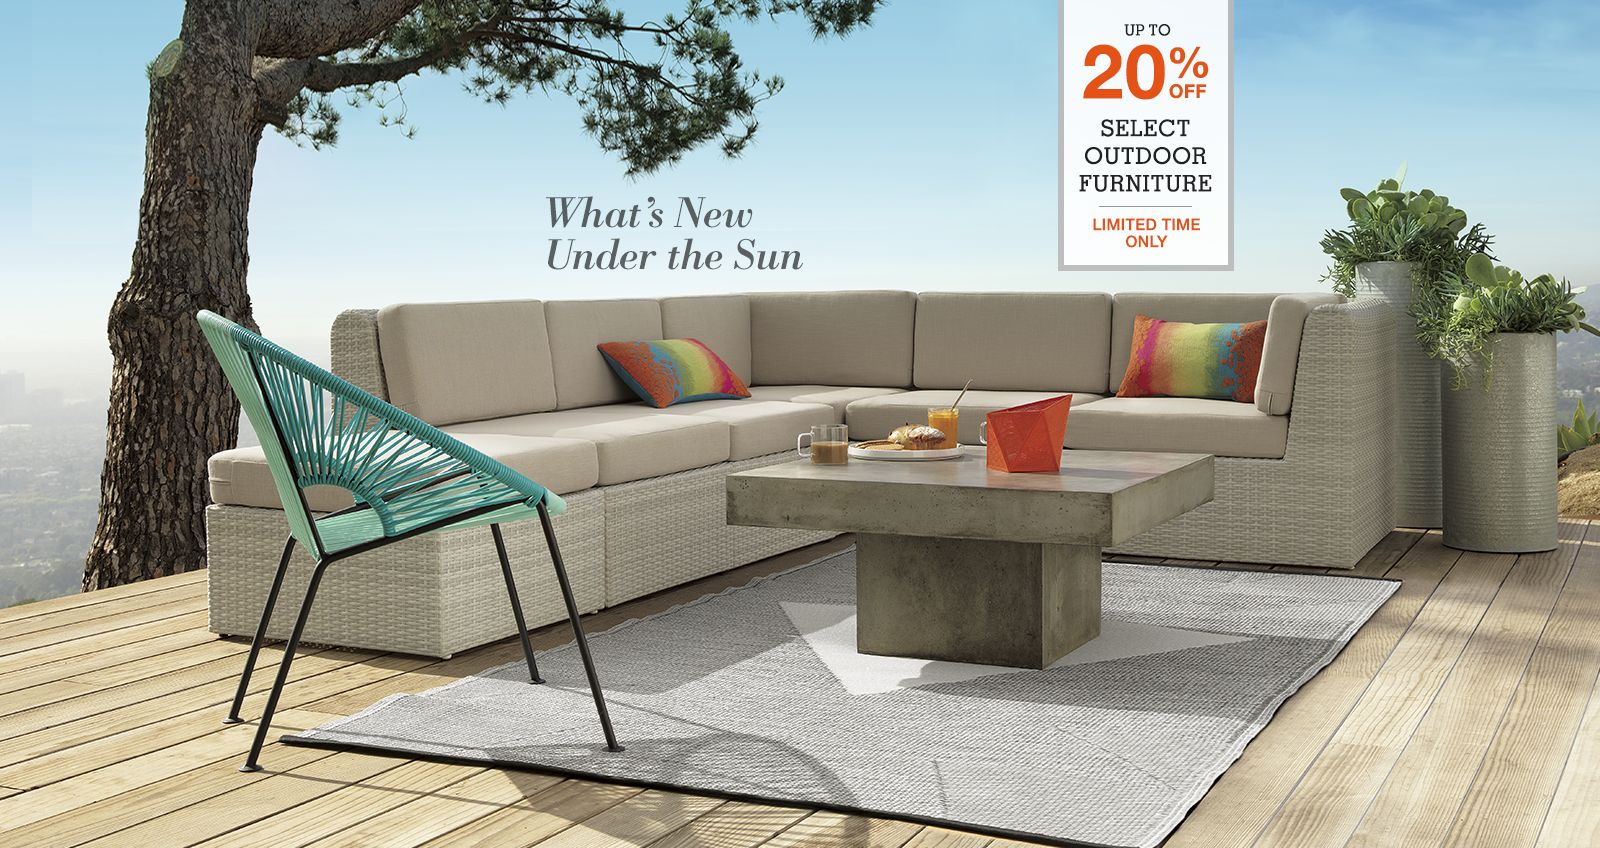 what's new under the sun. up tp 20% off select outdoor furniture. limited time only